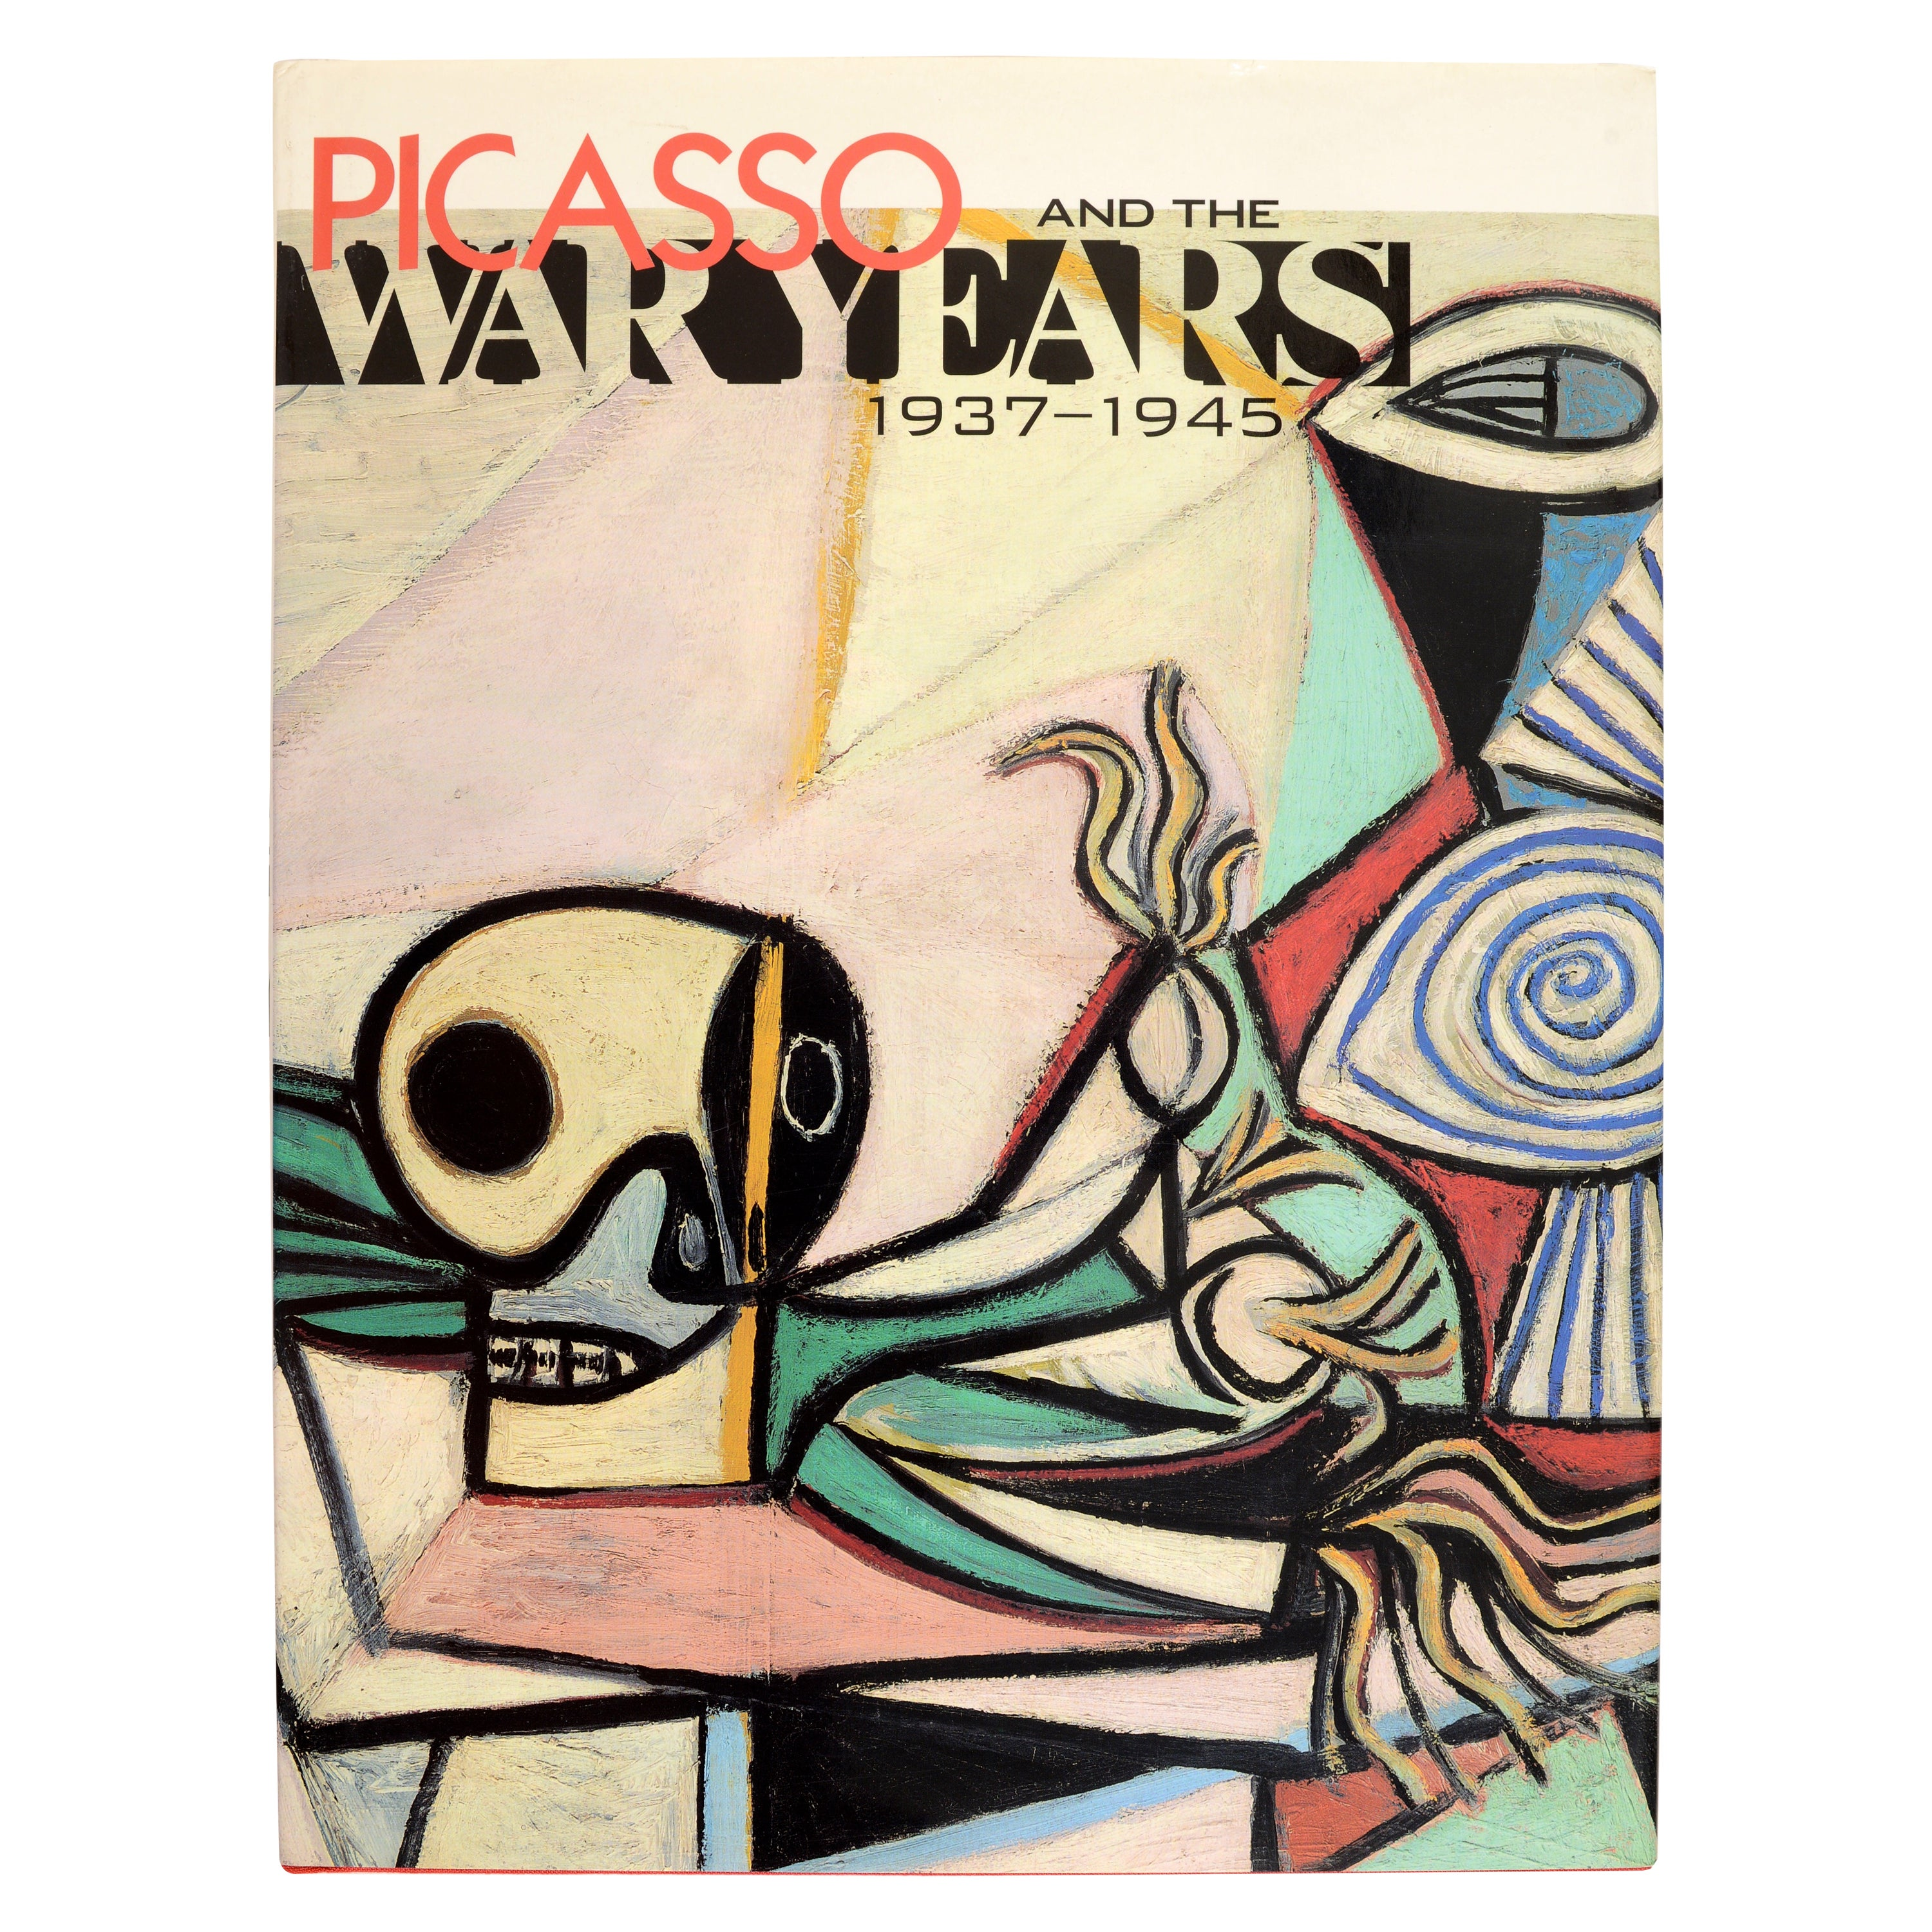 Picasso and the War Years, 1937-1945 Exhibition Catalog by Steven Nash 1st Ed